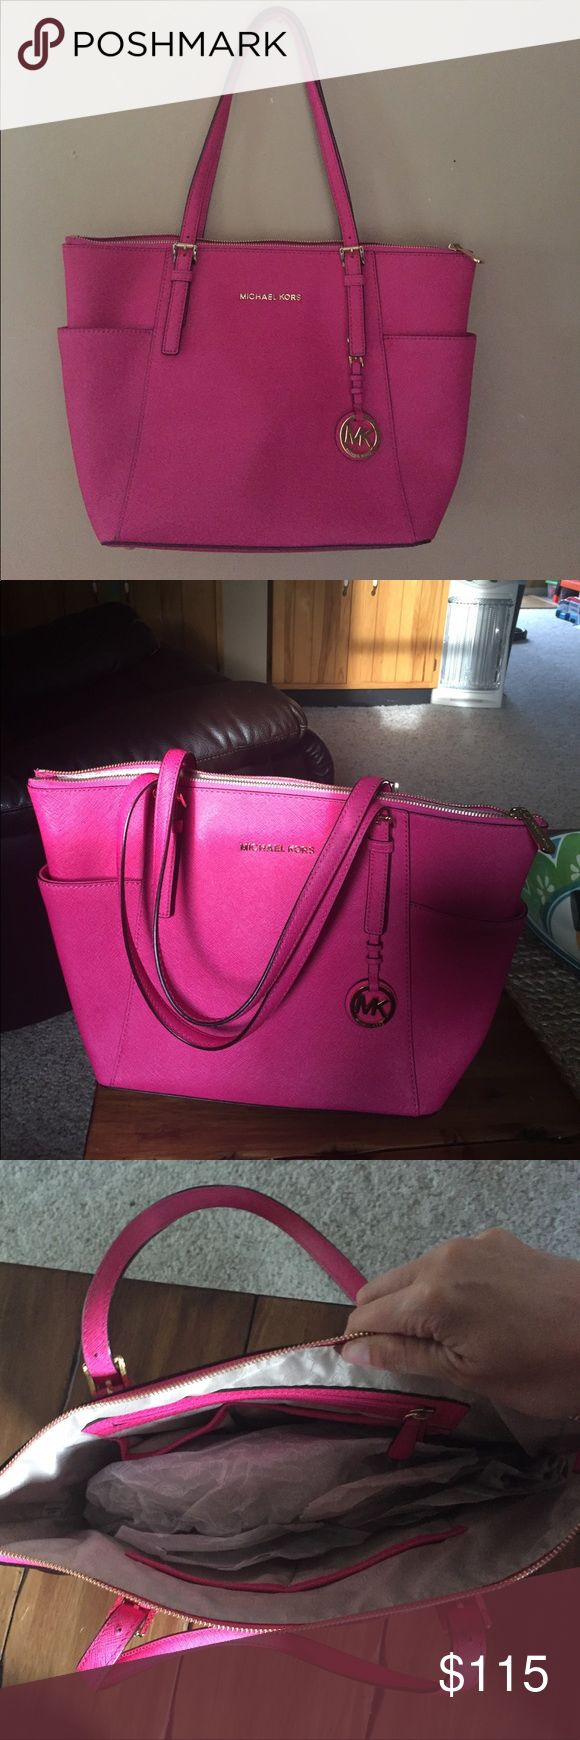 Michael Kors tote Pink Michael's Kors jet set tote. Bought from another posher, I love the tote just too big for me. Michael Kors Bags Totes